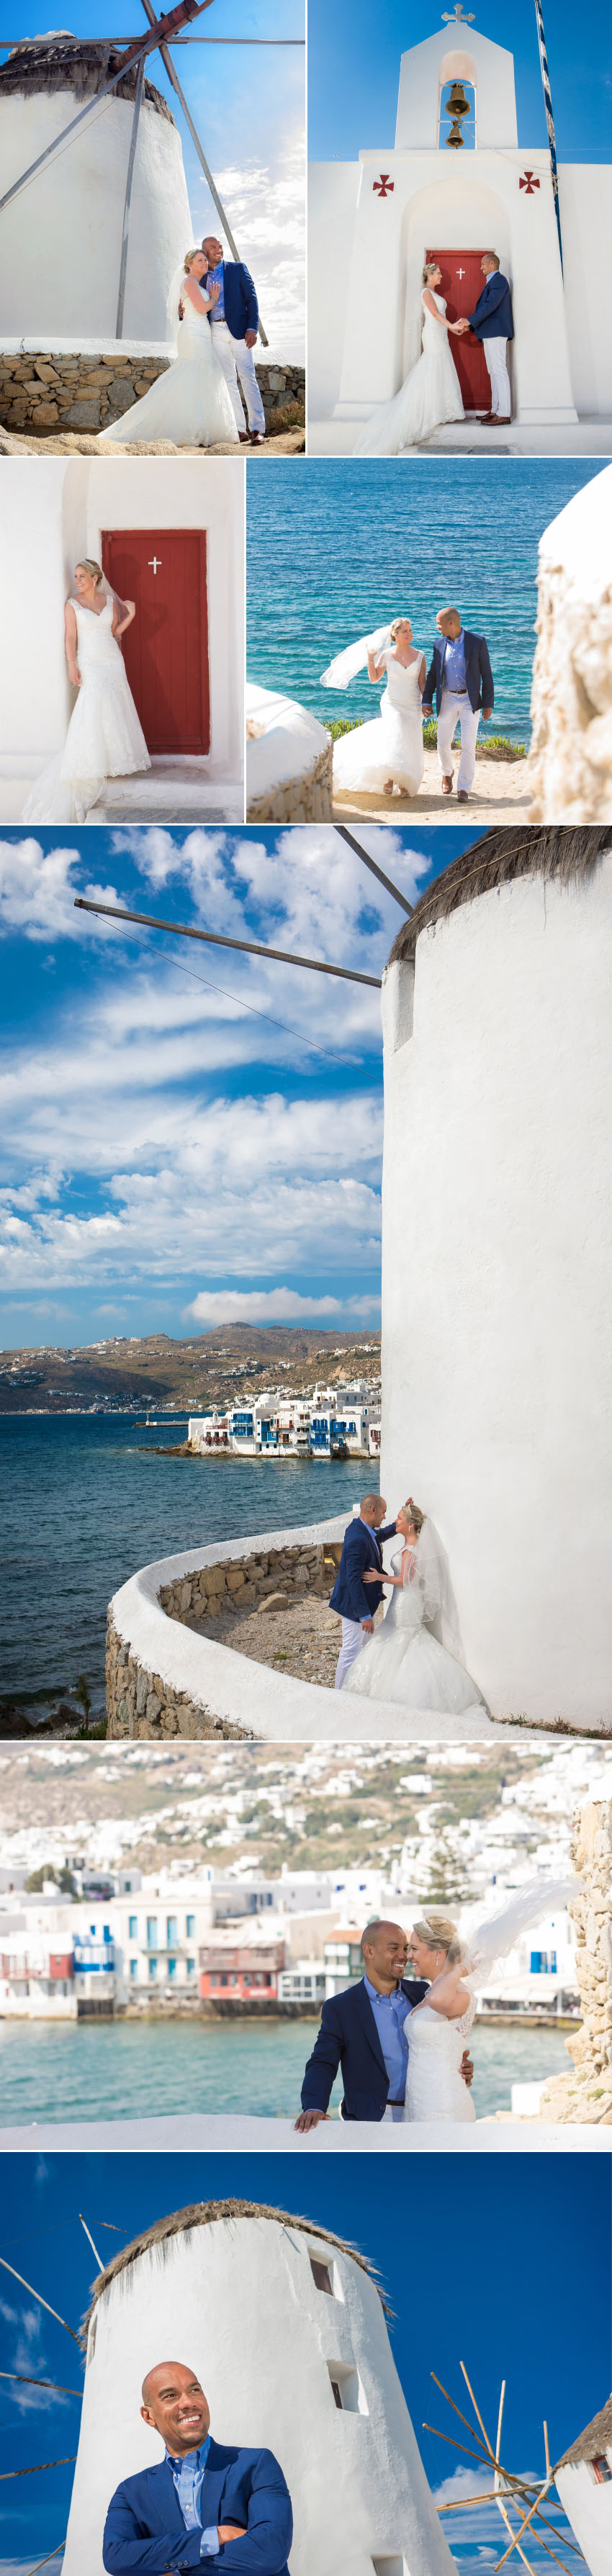 Couple posing during their wedding photography in Mykonos